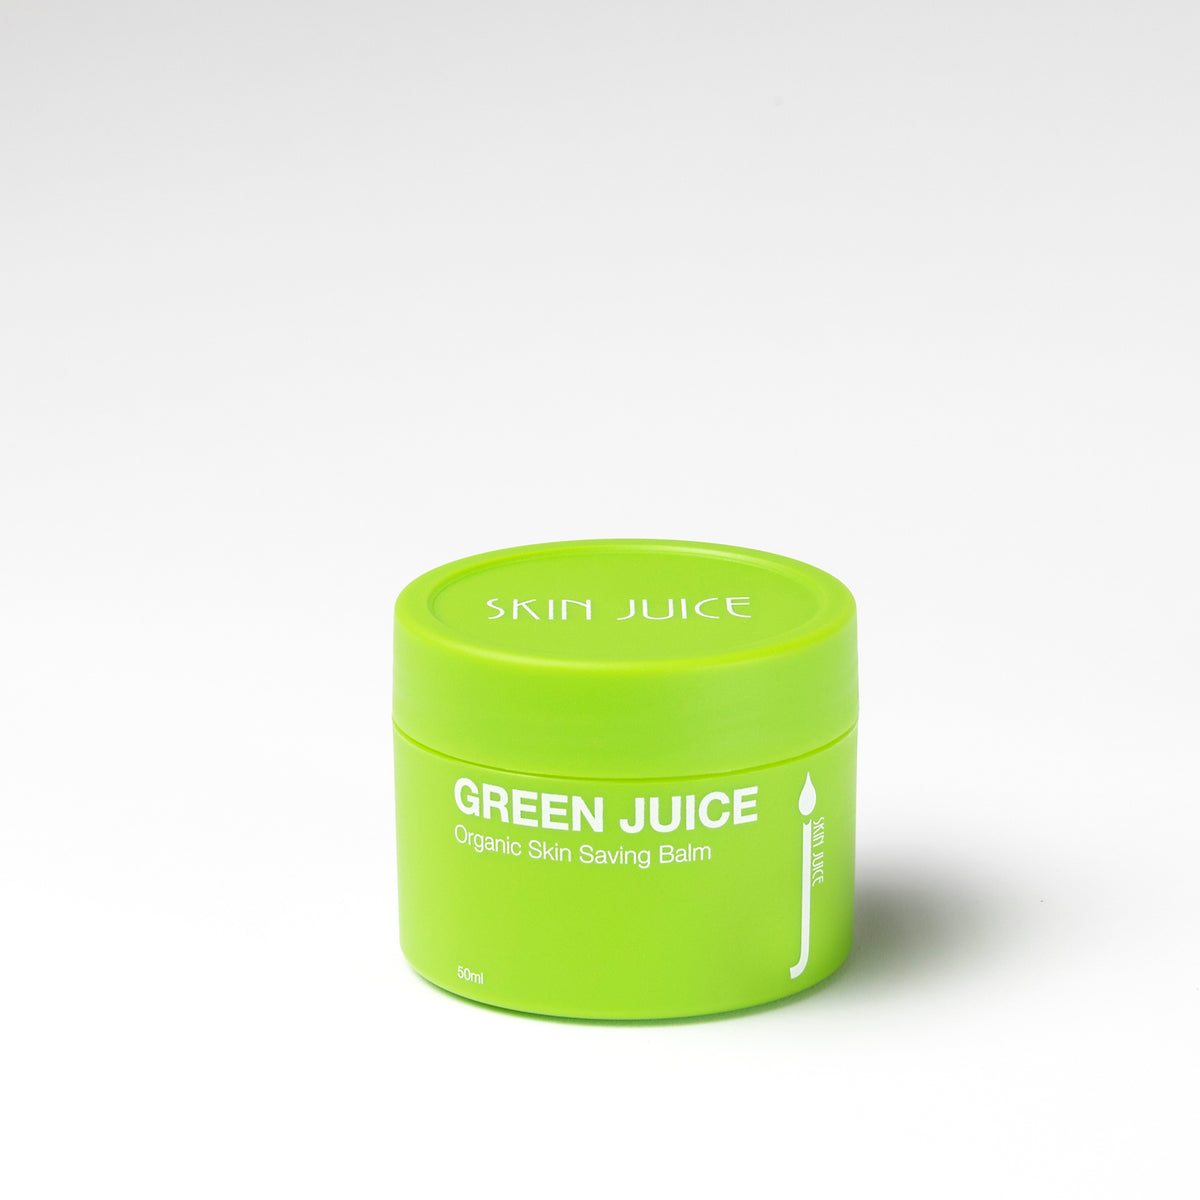 Skin Juice Green Juice sooths, calms and restores all skin types in need of TLC. Official Skin Juice stockist. 100% natural Australian skincare. Afterpay it.